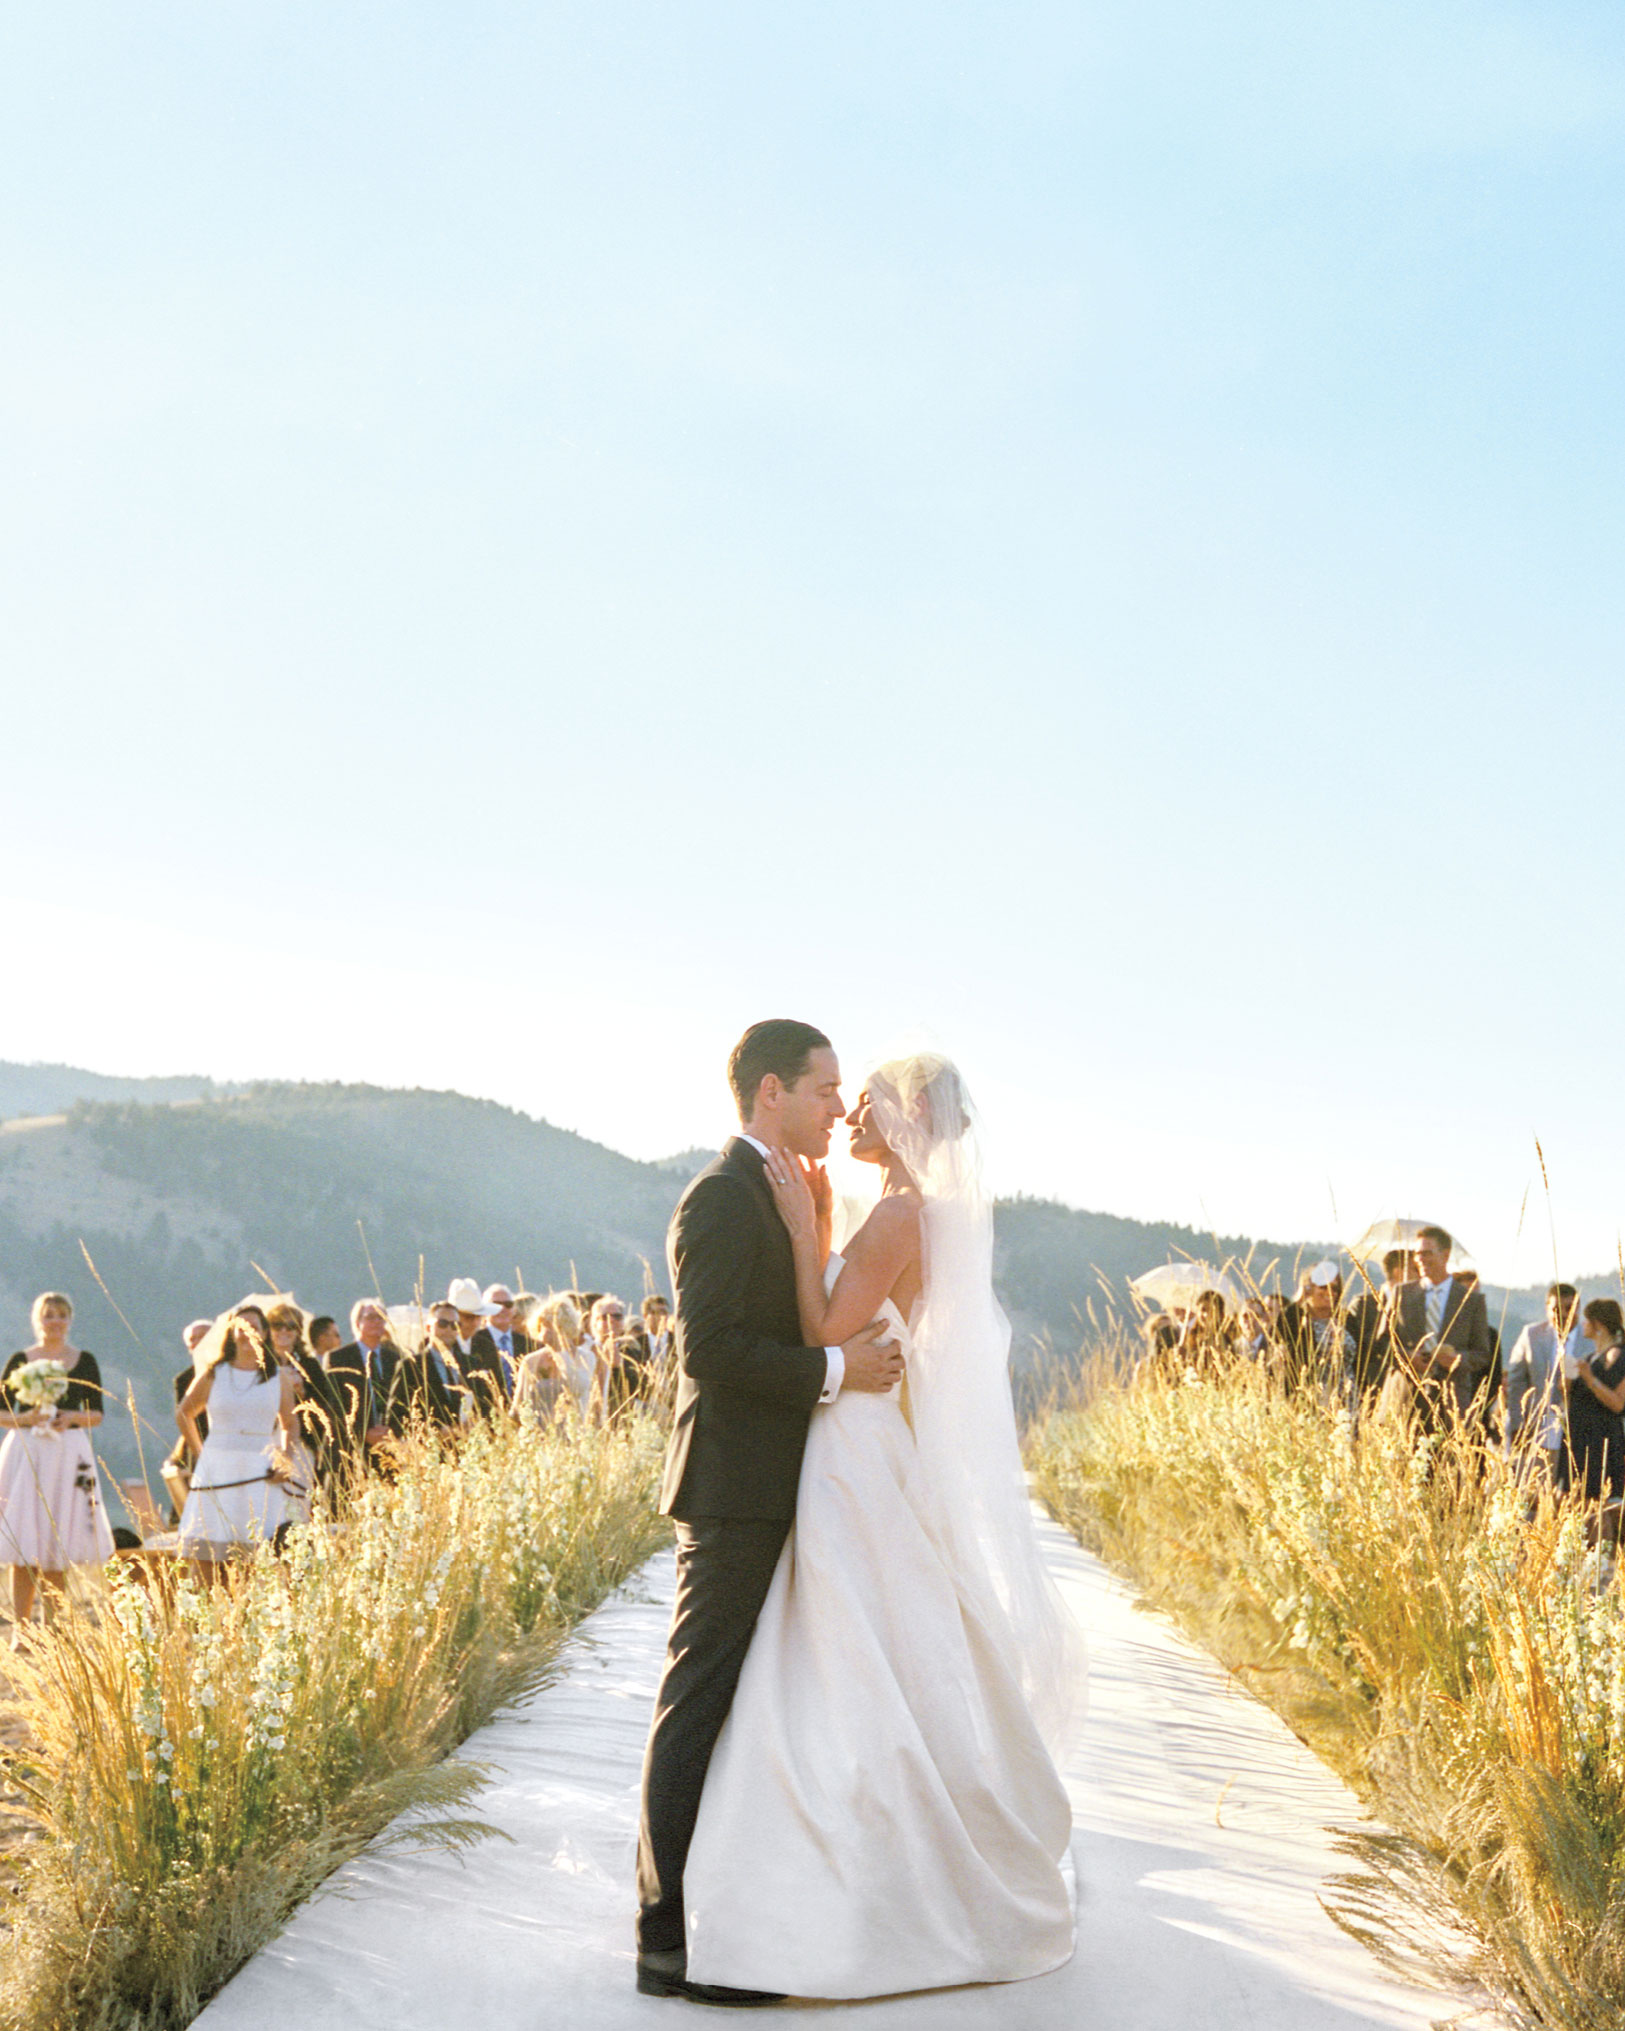 Hometown Wedding Rehearsal Slideshow: Behind The Scenes: Kate Bosworth And Michael Polish's